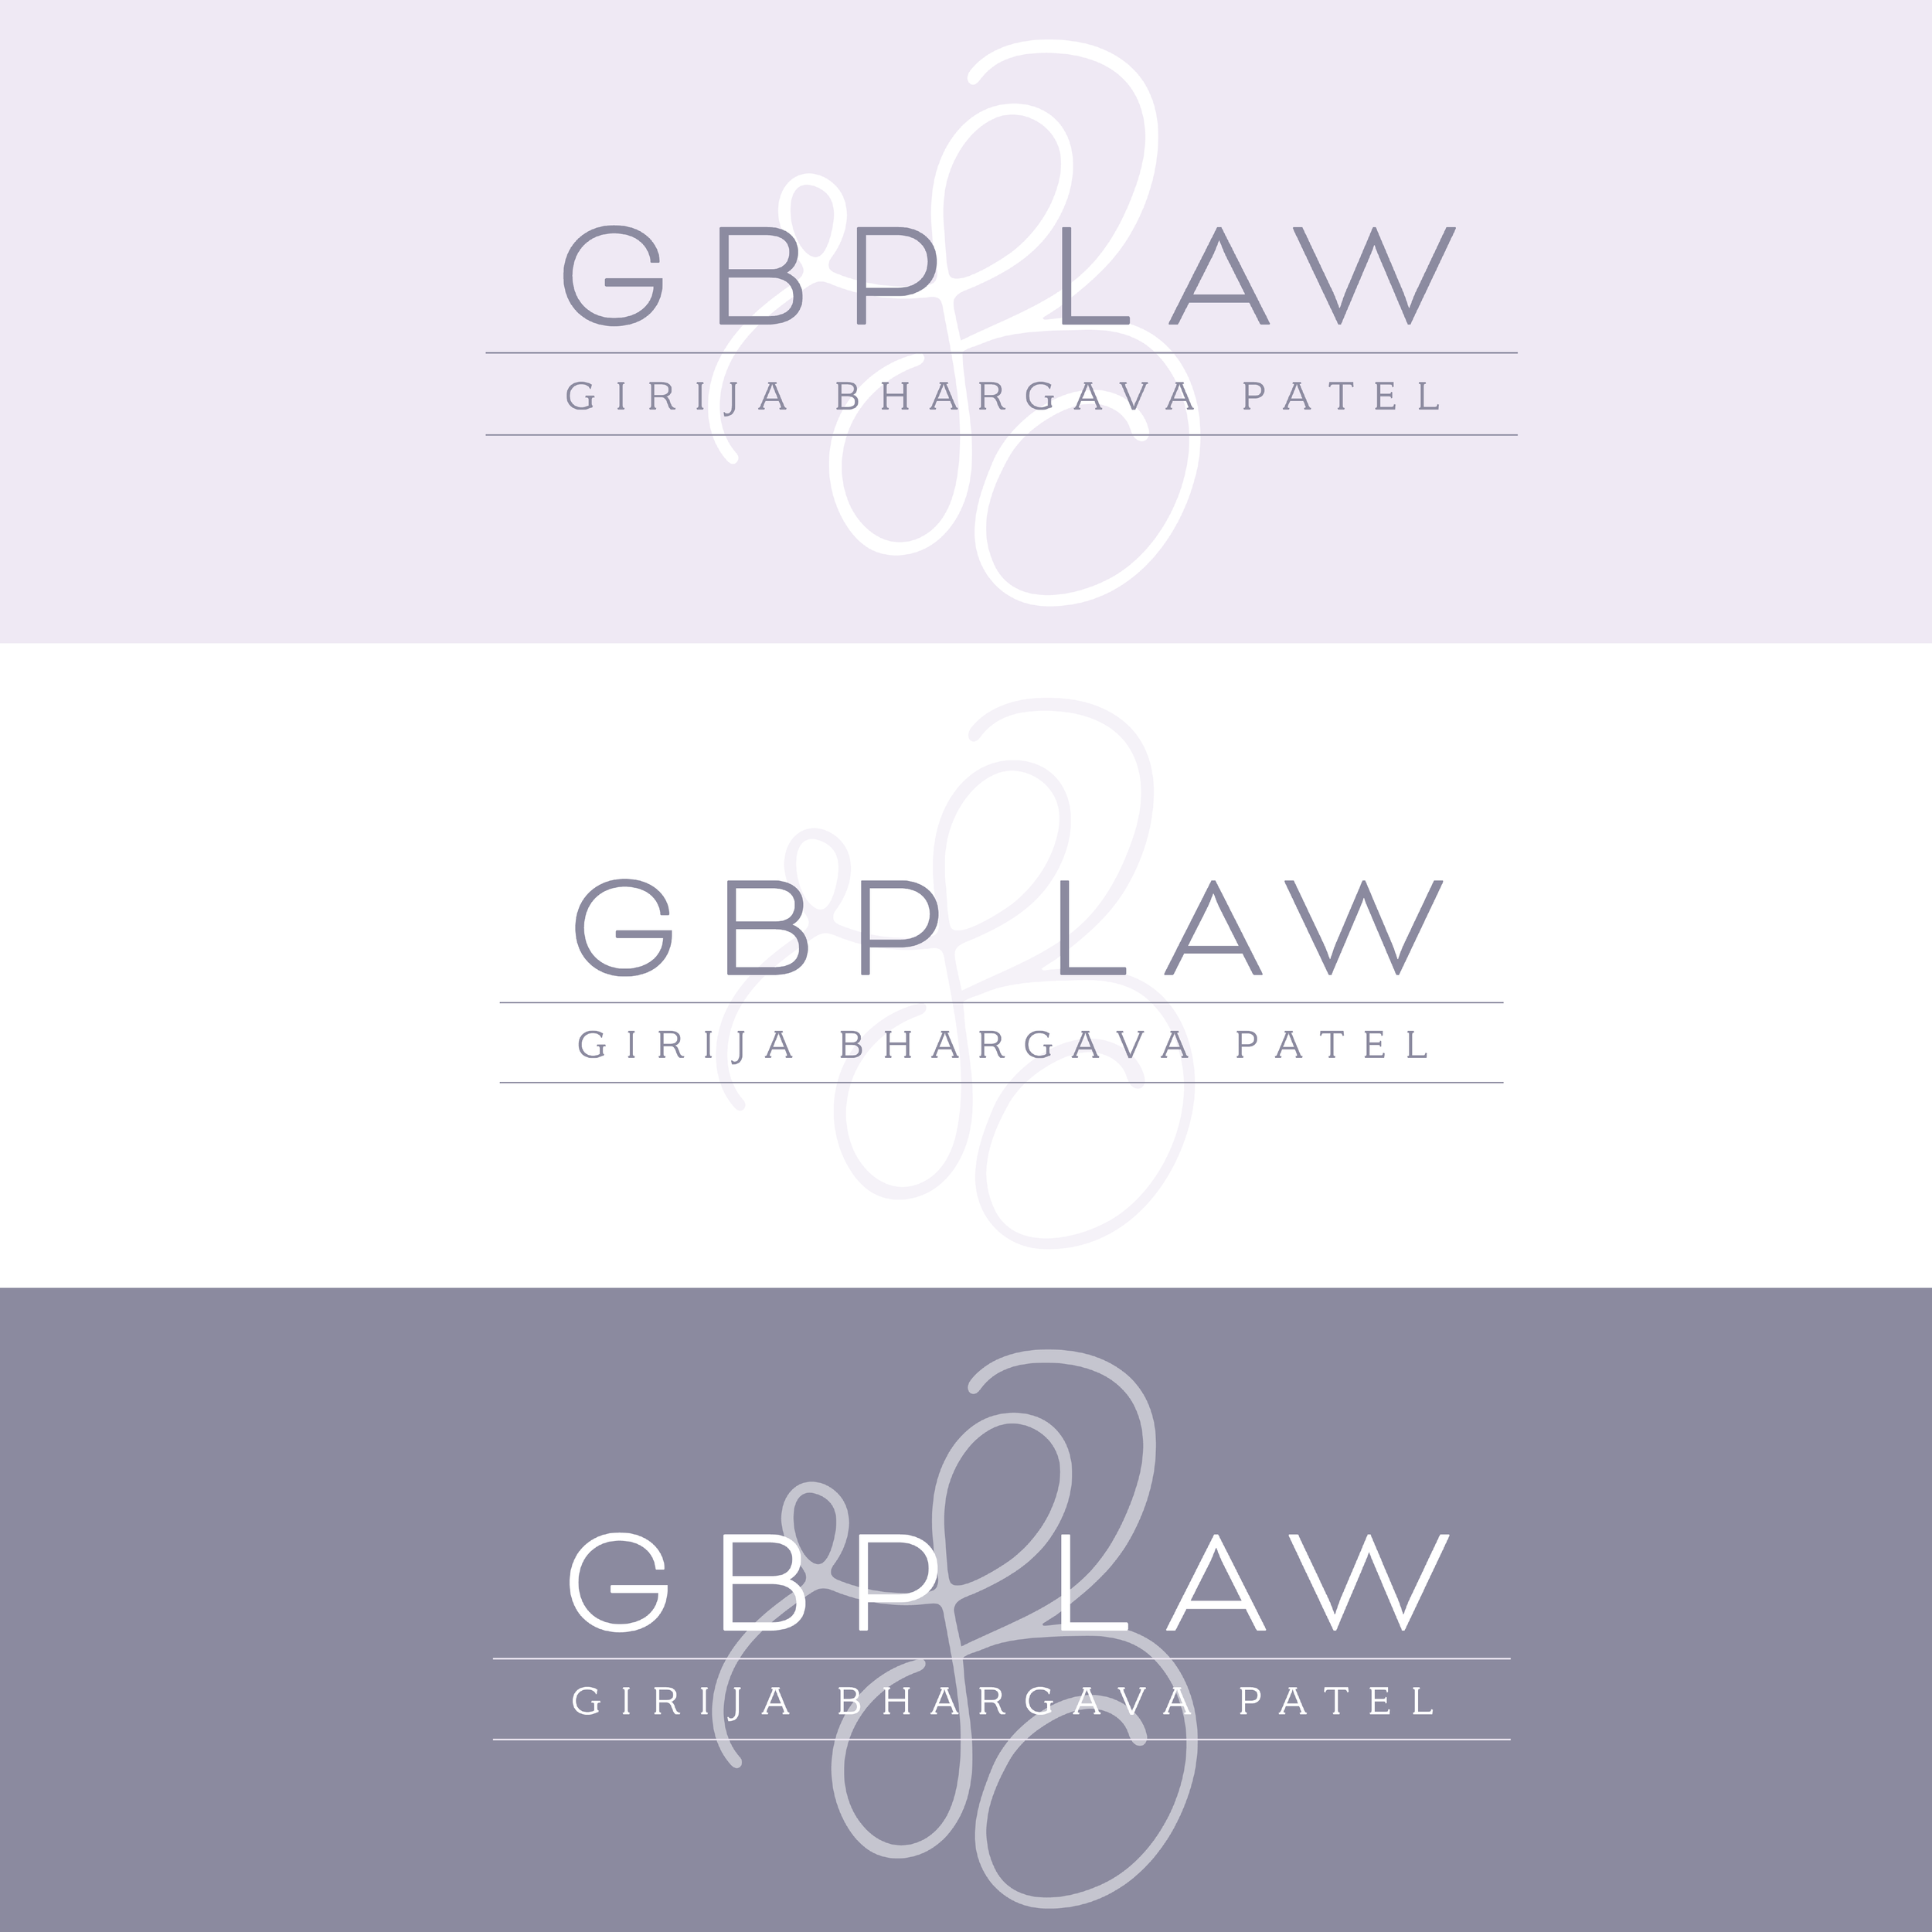 GBP Law Final Logo and Branding by Kindly by Kelsea